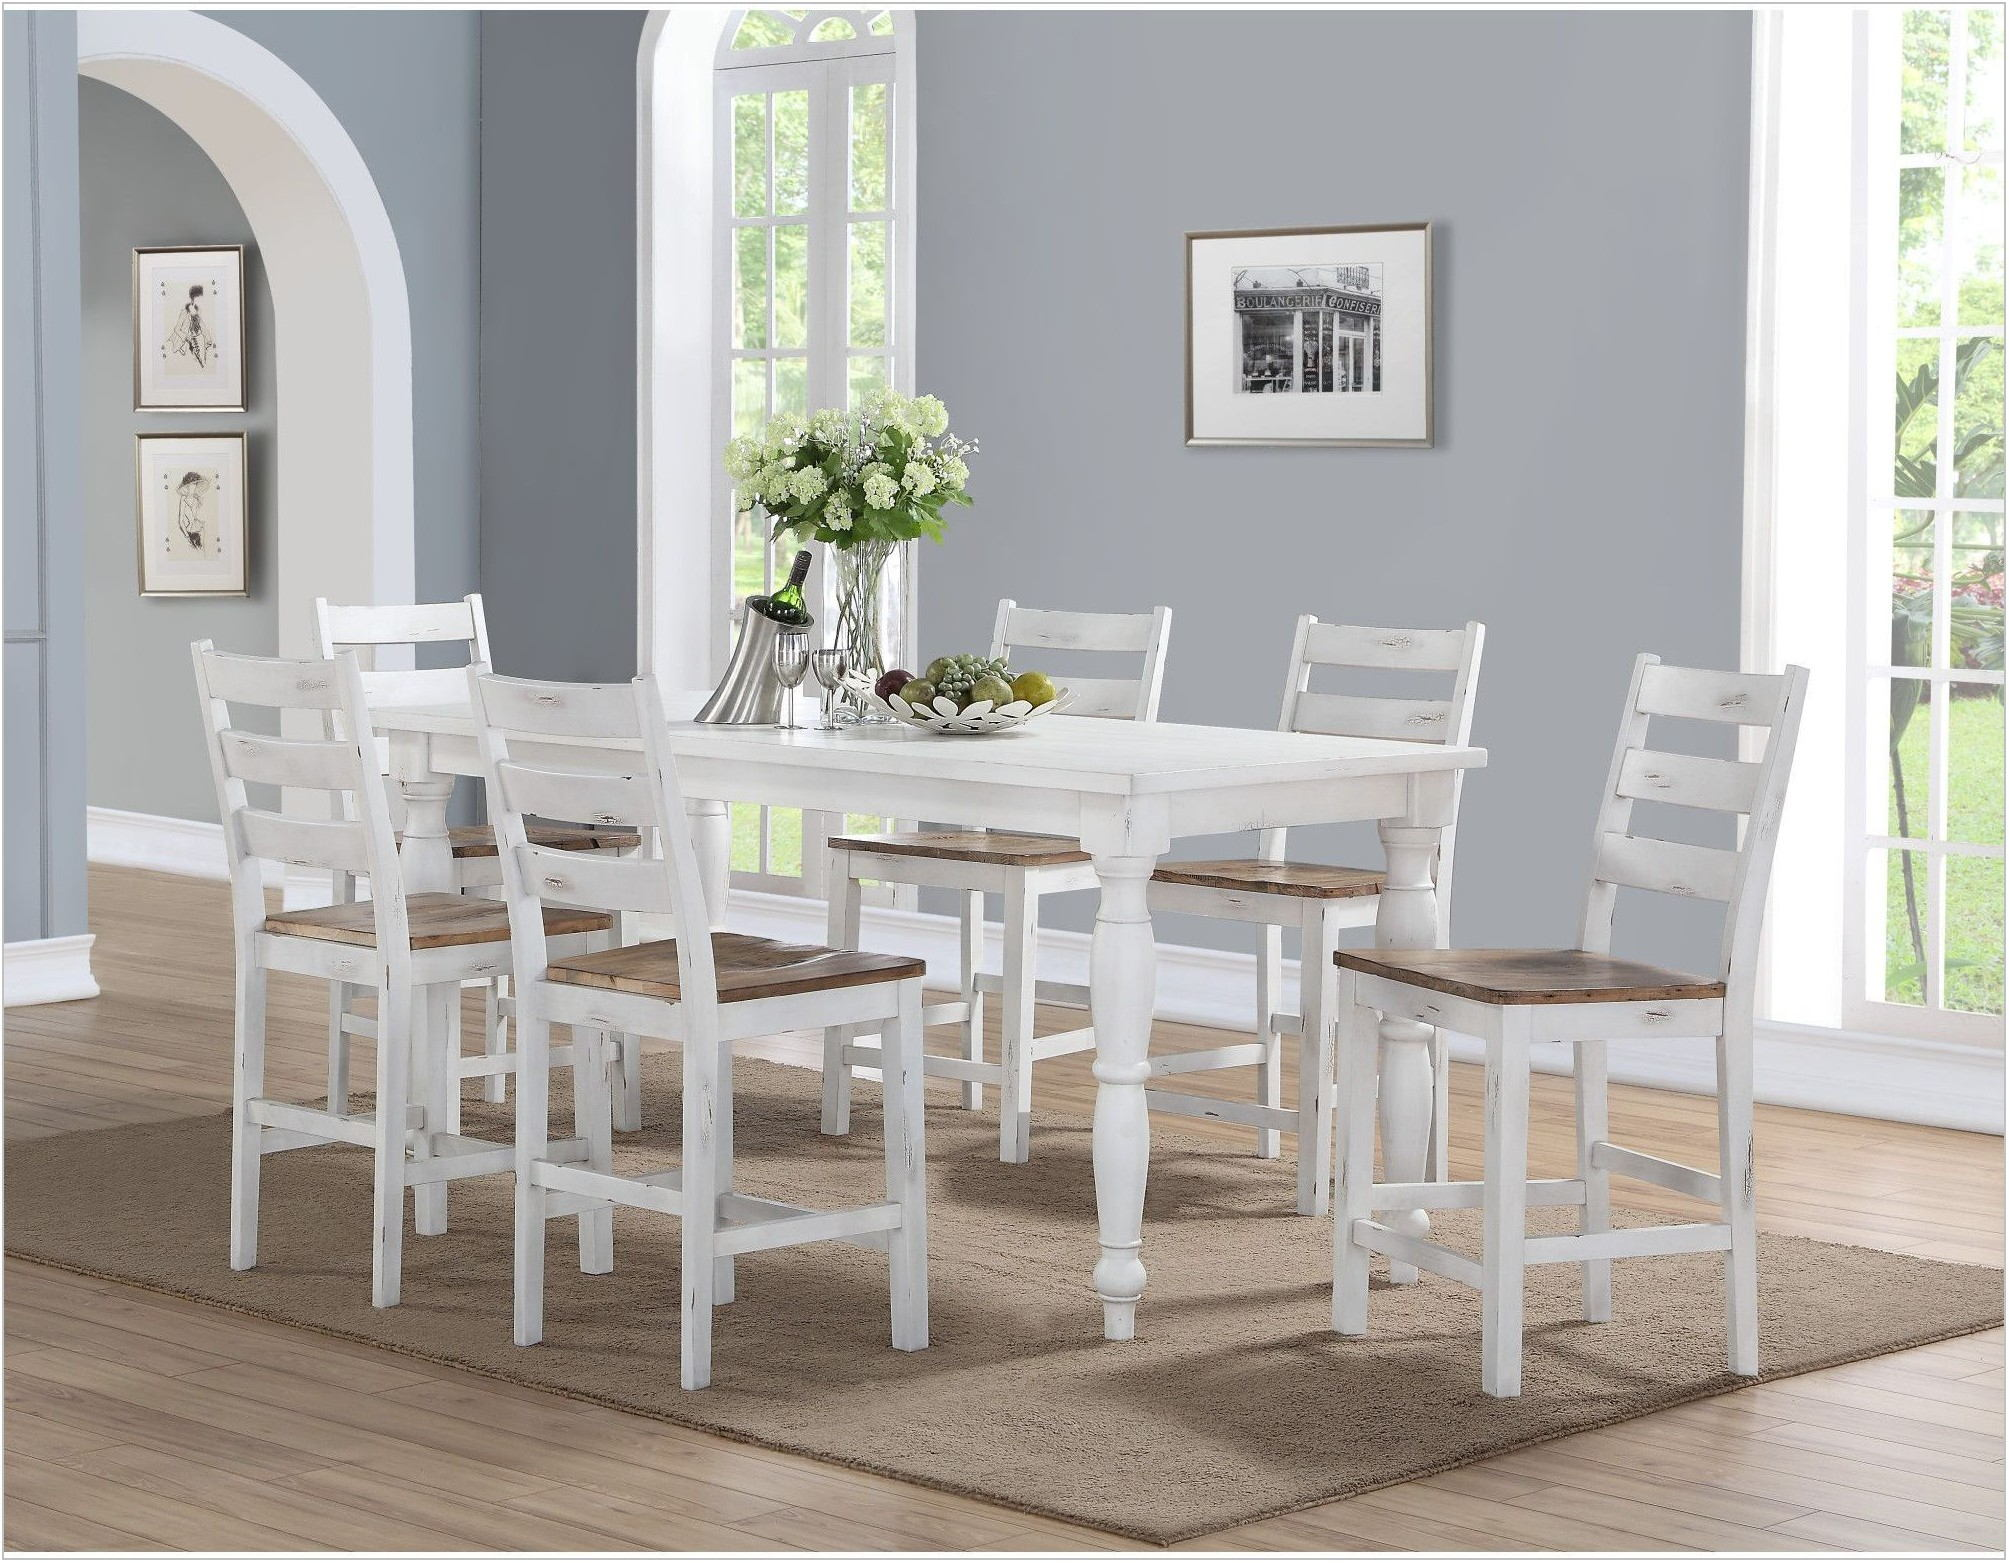 Country White Dining Room Set